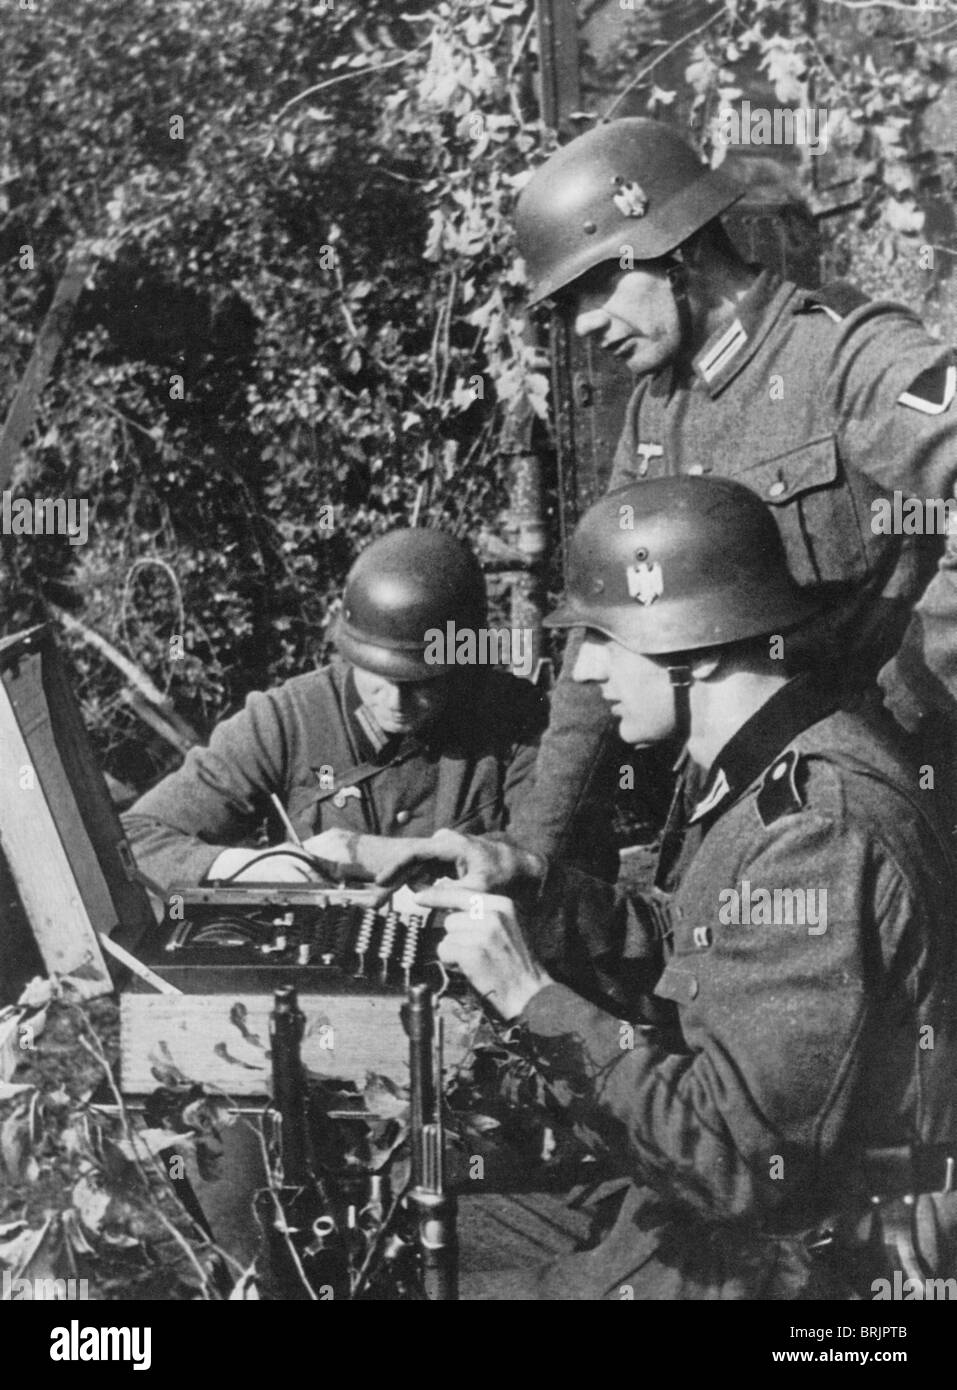 ENIGMA MACHINE In Use By Germany Army During WW2